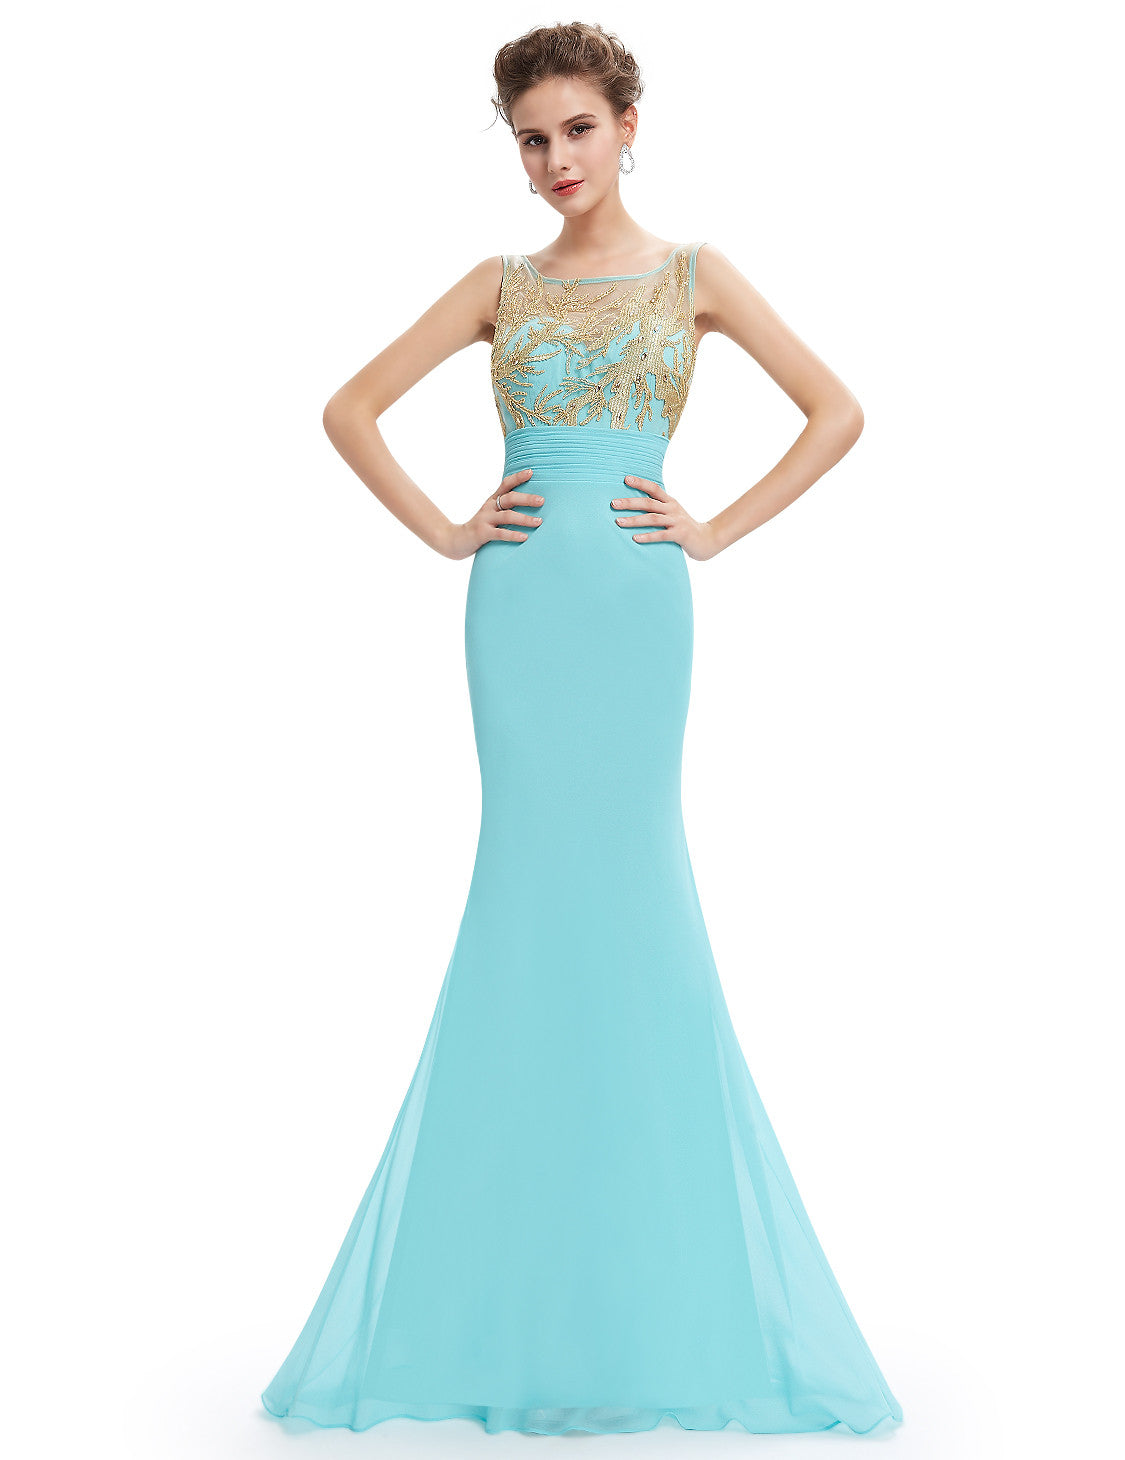 Elegant Evening Sleeveless Long Party Dress